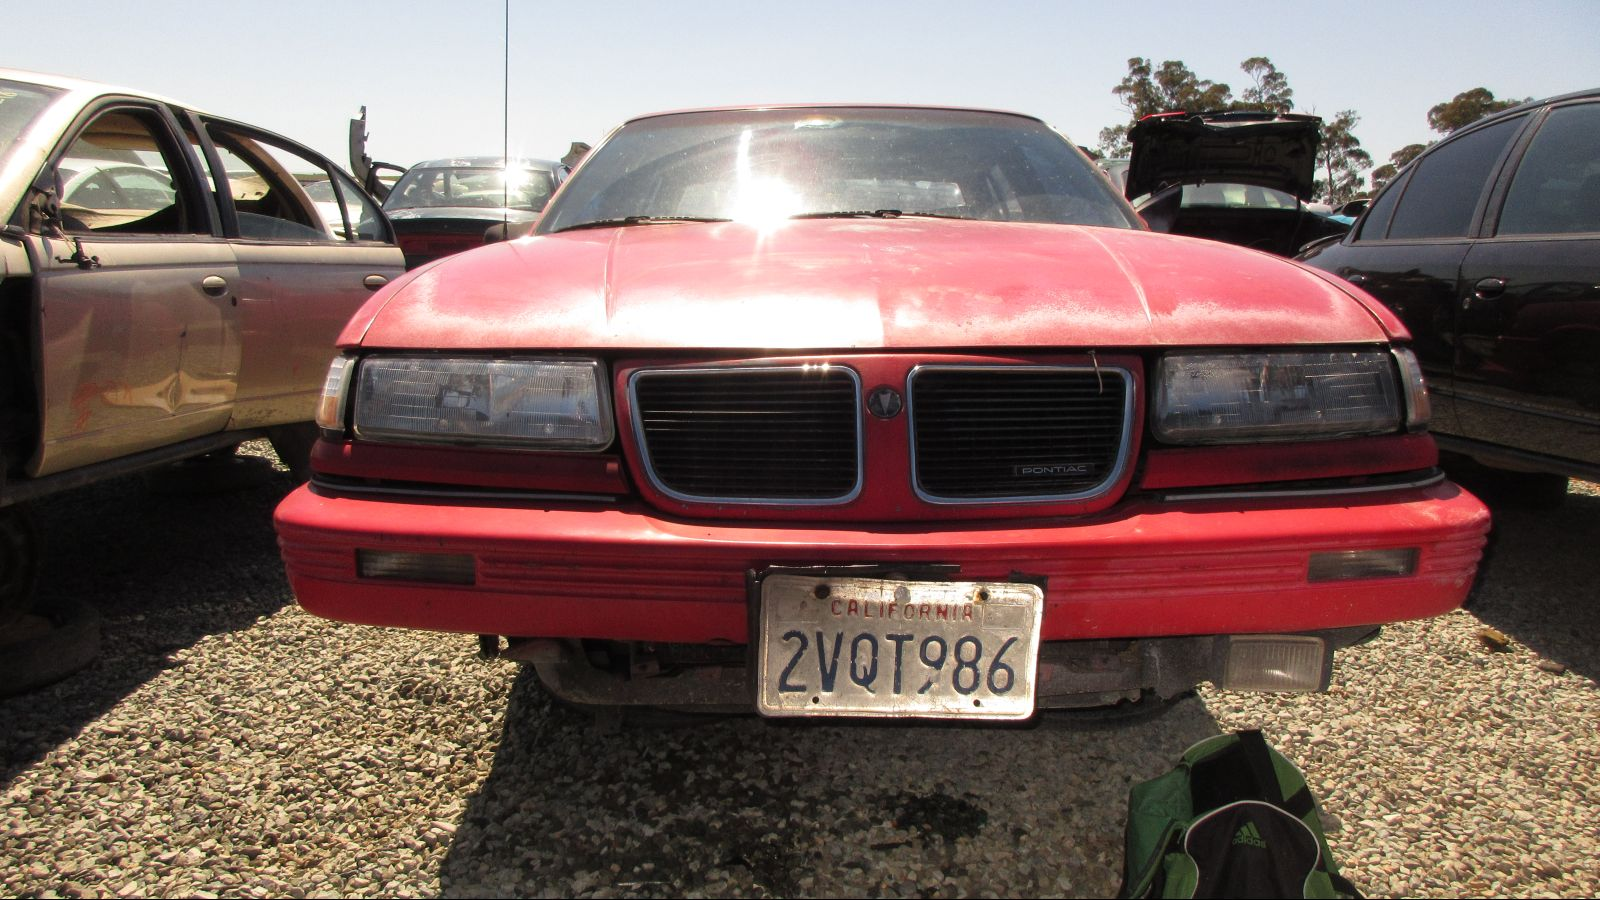 hight resolution of i seek out quad 4 equipped cars during my junkyard travels and i have photographed quite a few this 89 cutlass calais this 90 cutlass calais